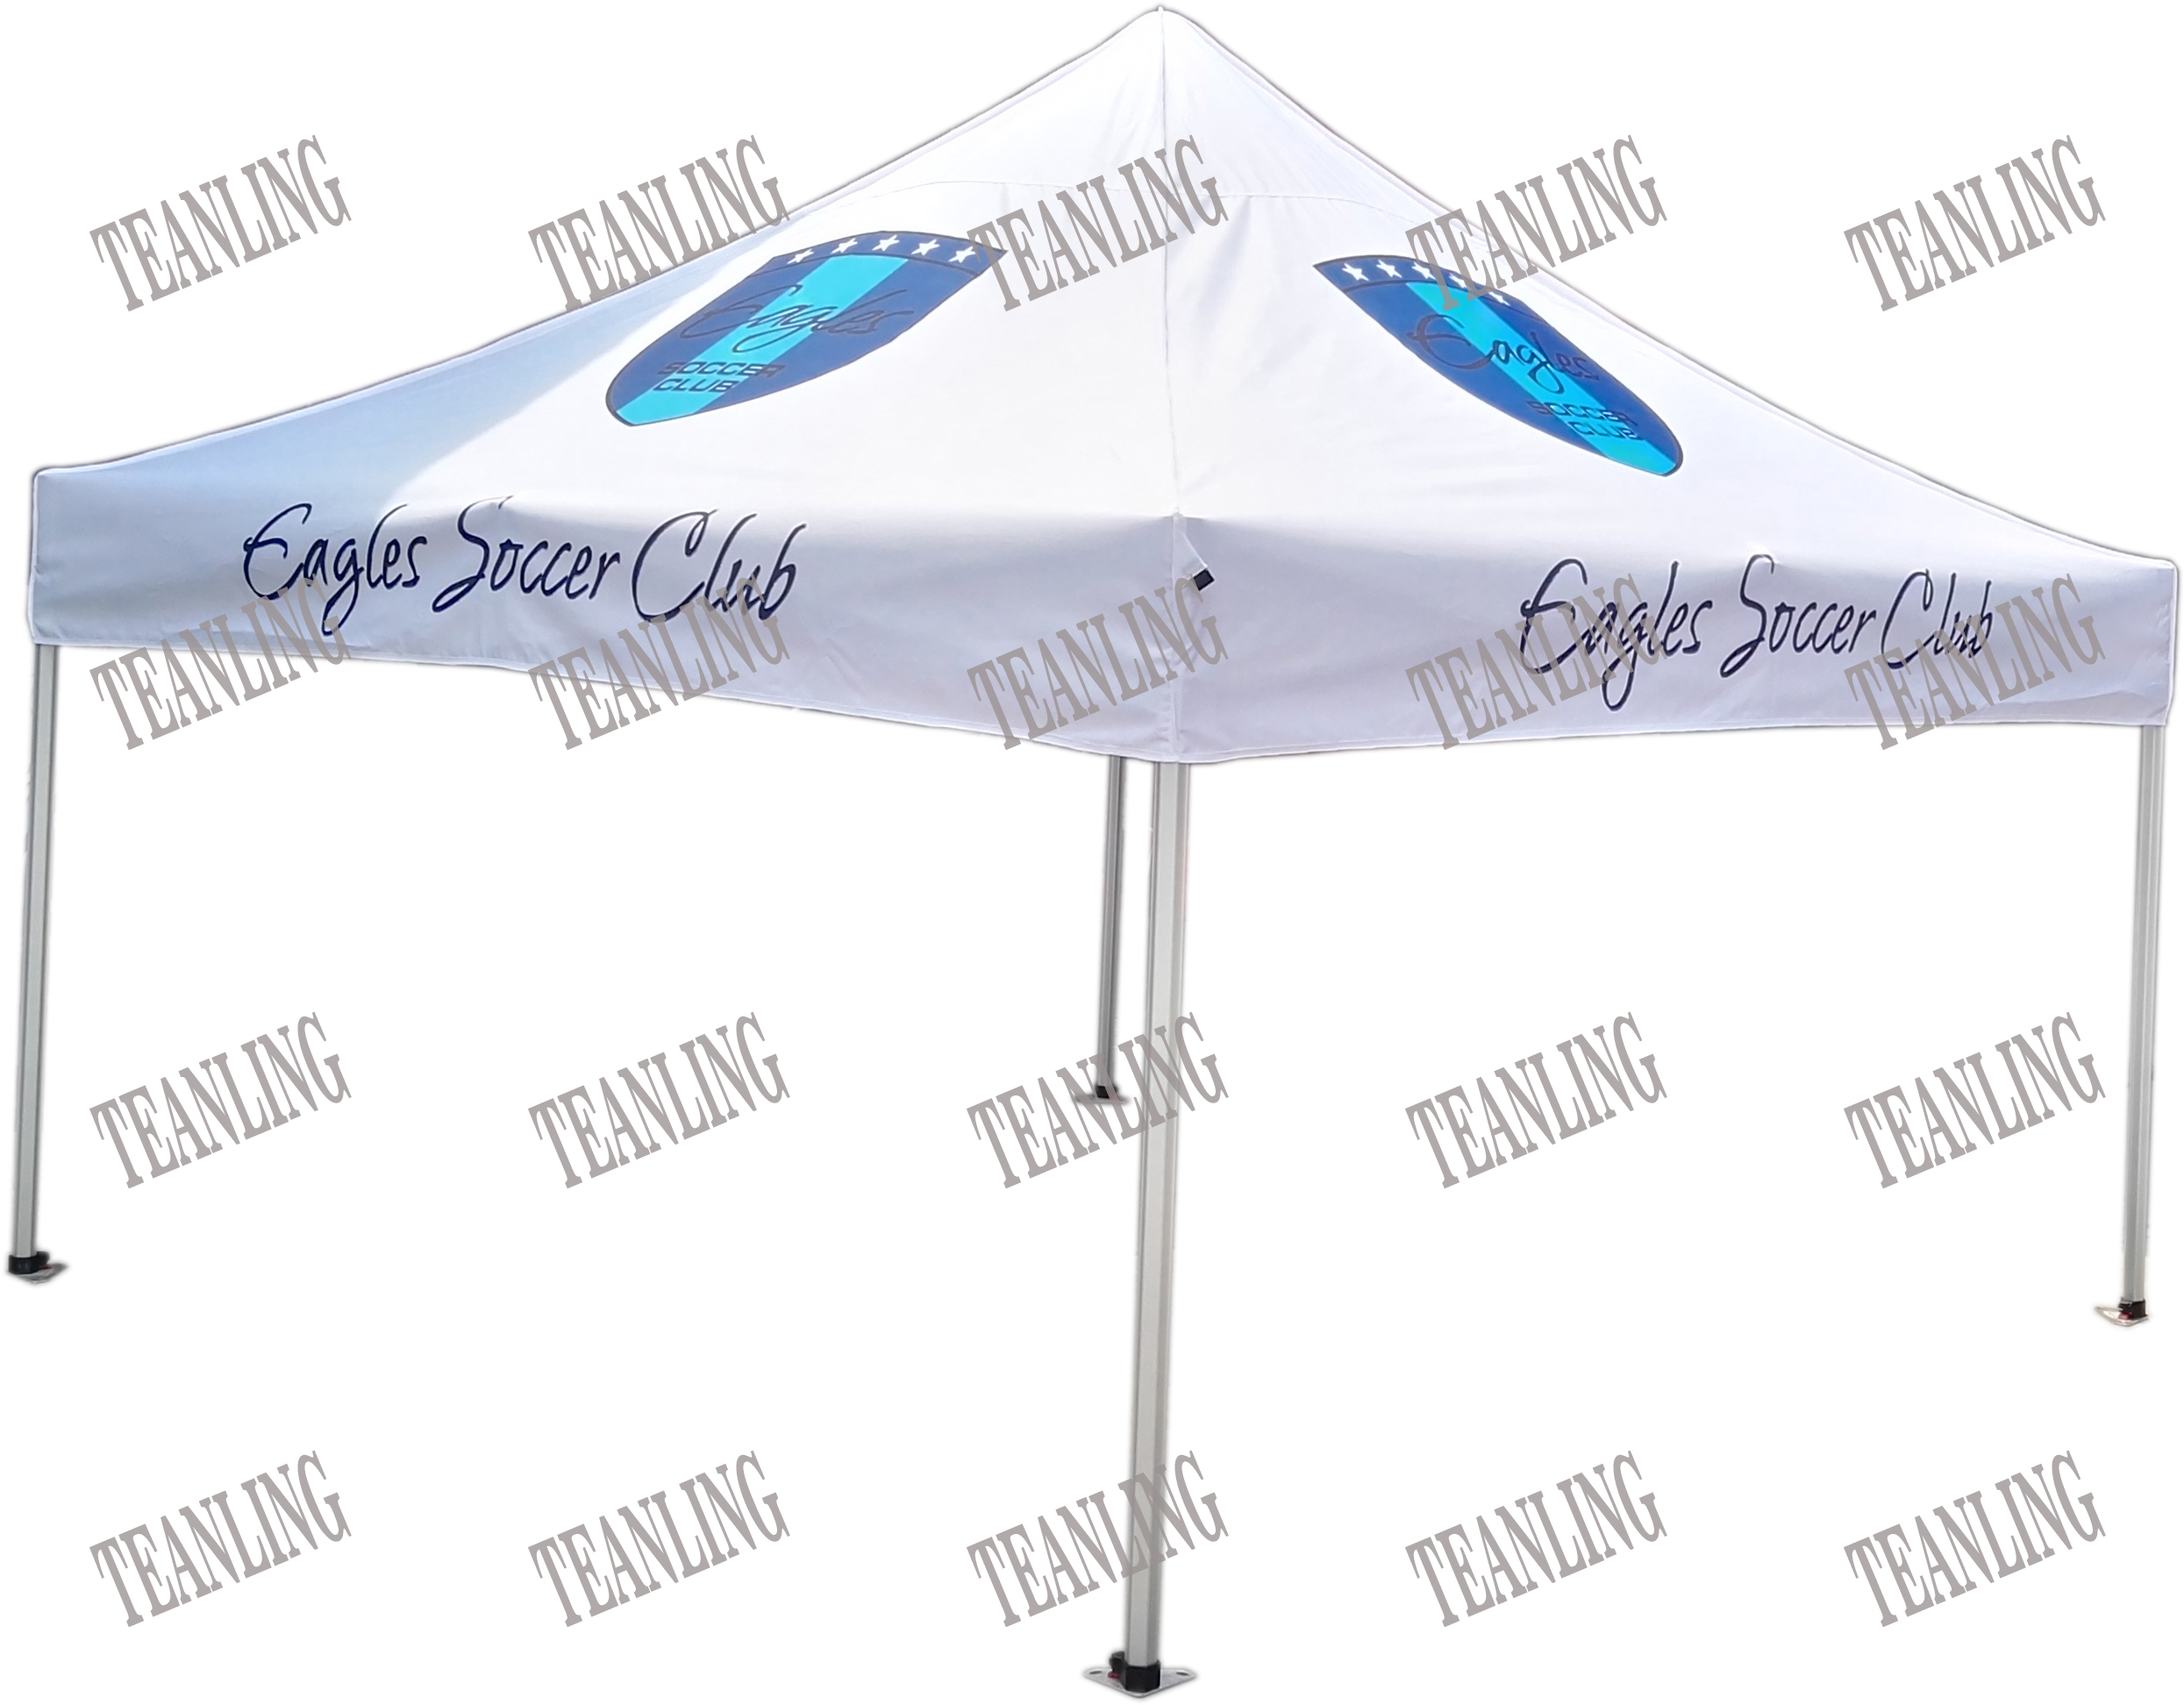 Free Tents for Outdoor Tents